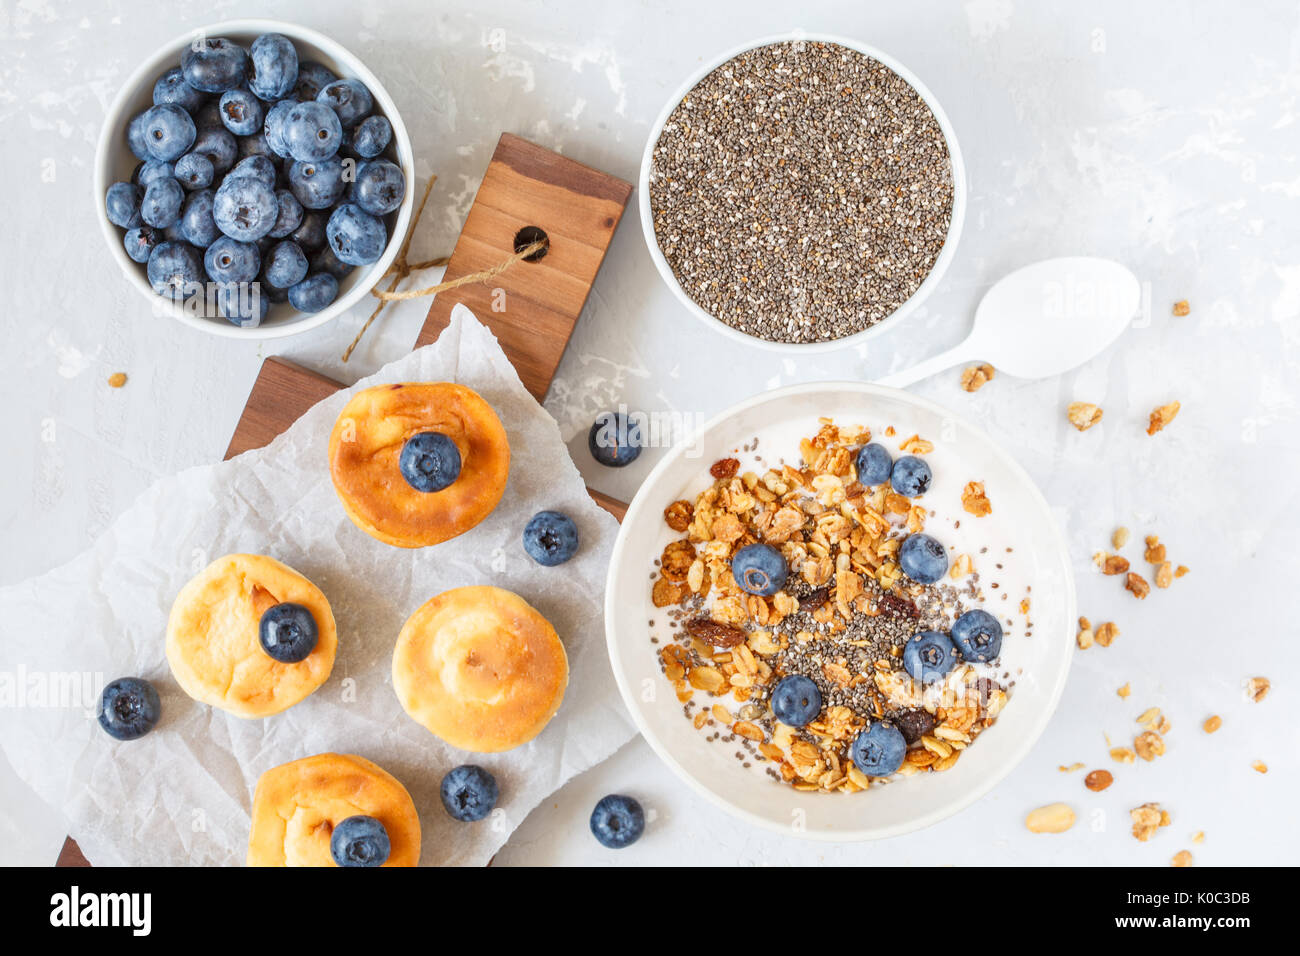 granola with yogurt and mini cheesecakes with blueberries for breakfast. - Stock Image